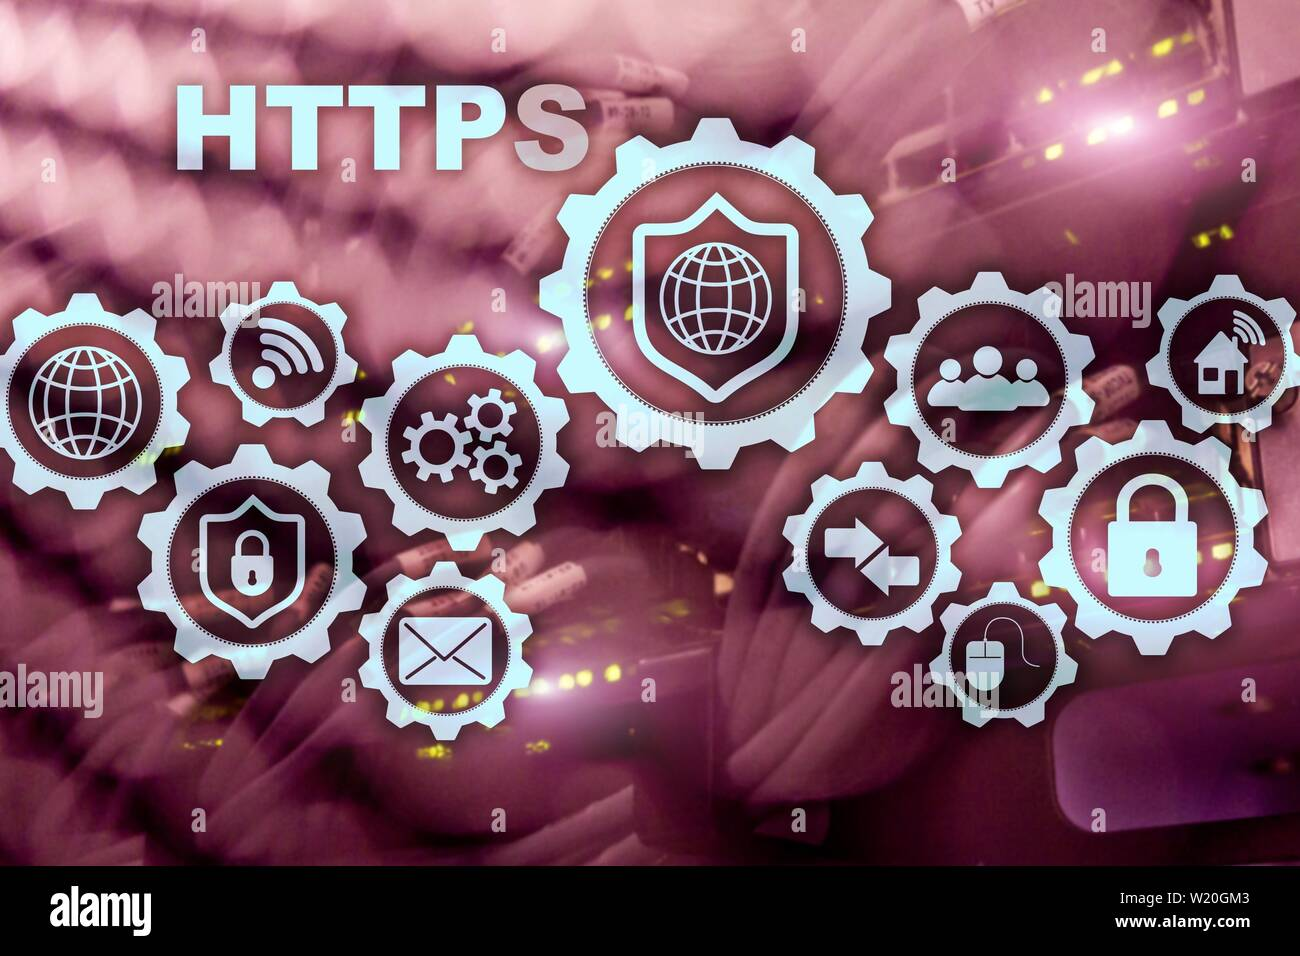 HTTPS. Hypertext Transport Protocol Secure. Technology Concept on Server Room Background. Virtual Icon for network security web service - Stock Image